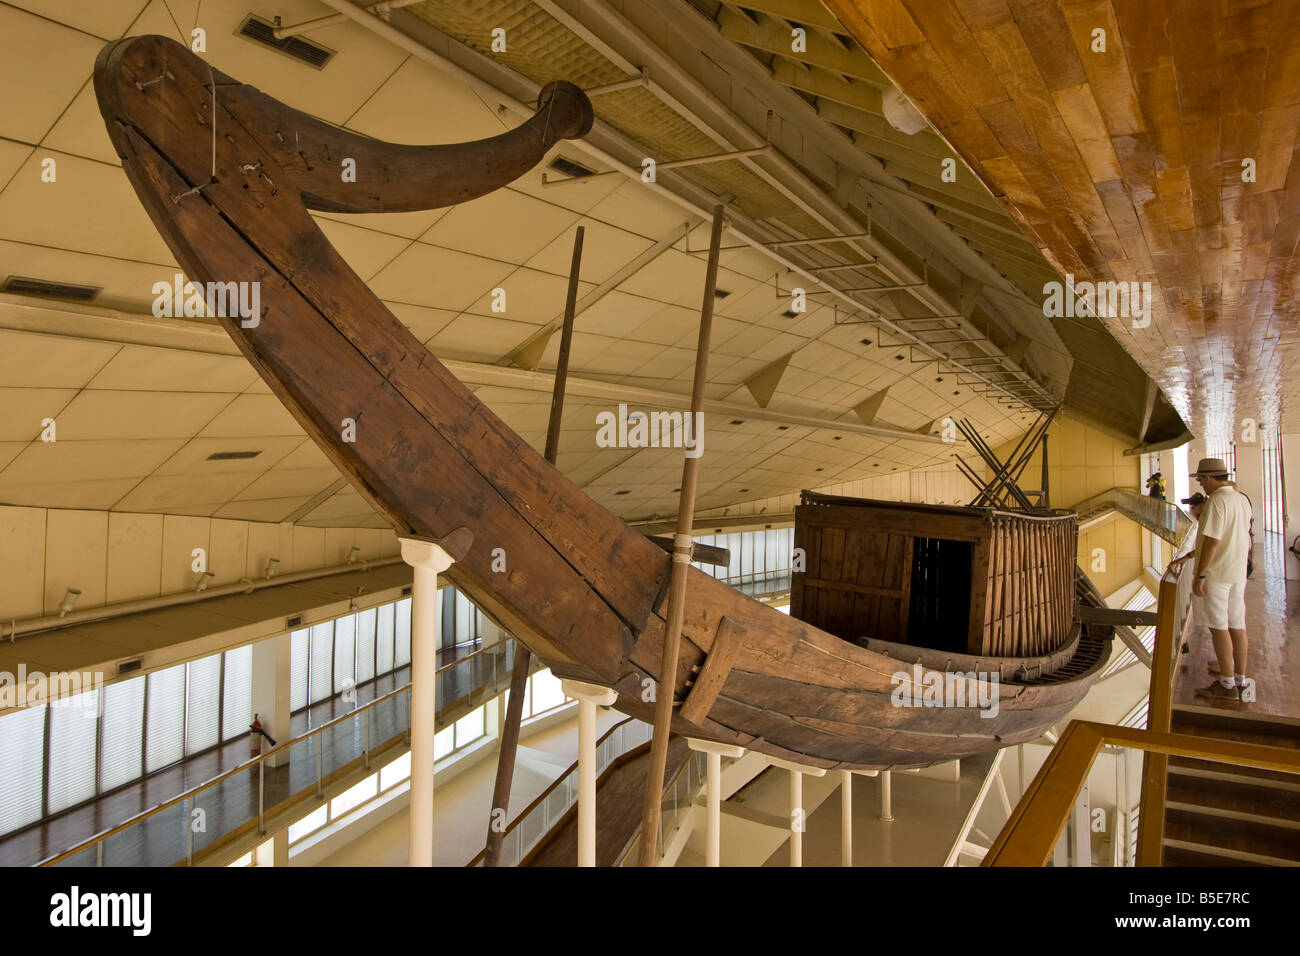 Solar Barque of Khufu in Giza in Cairo Egypt - Stock Image